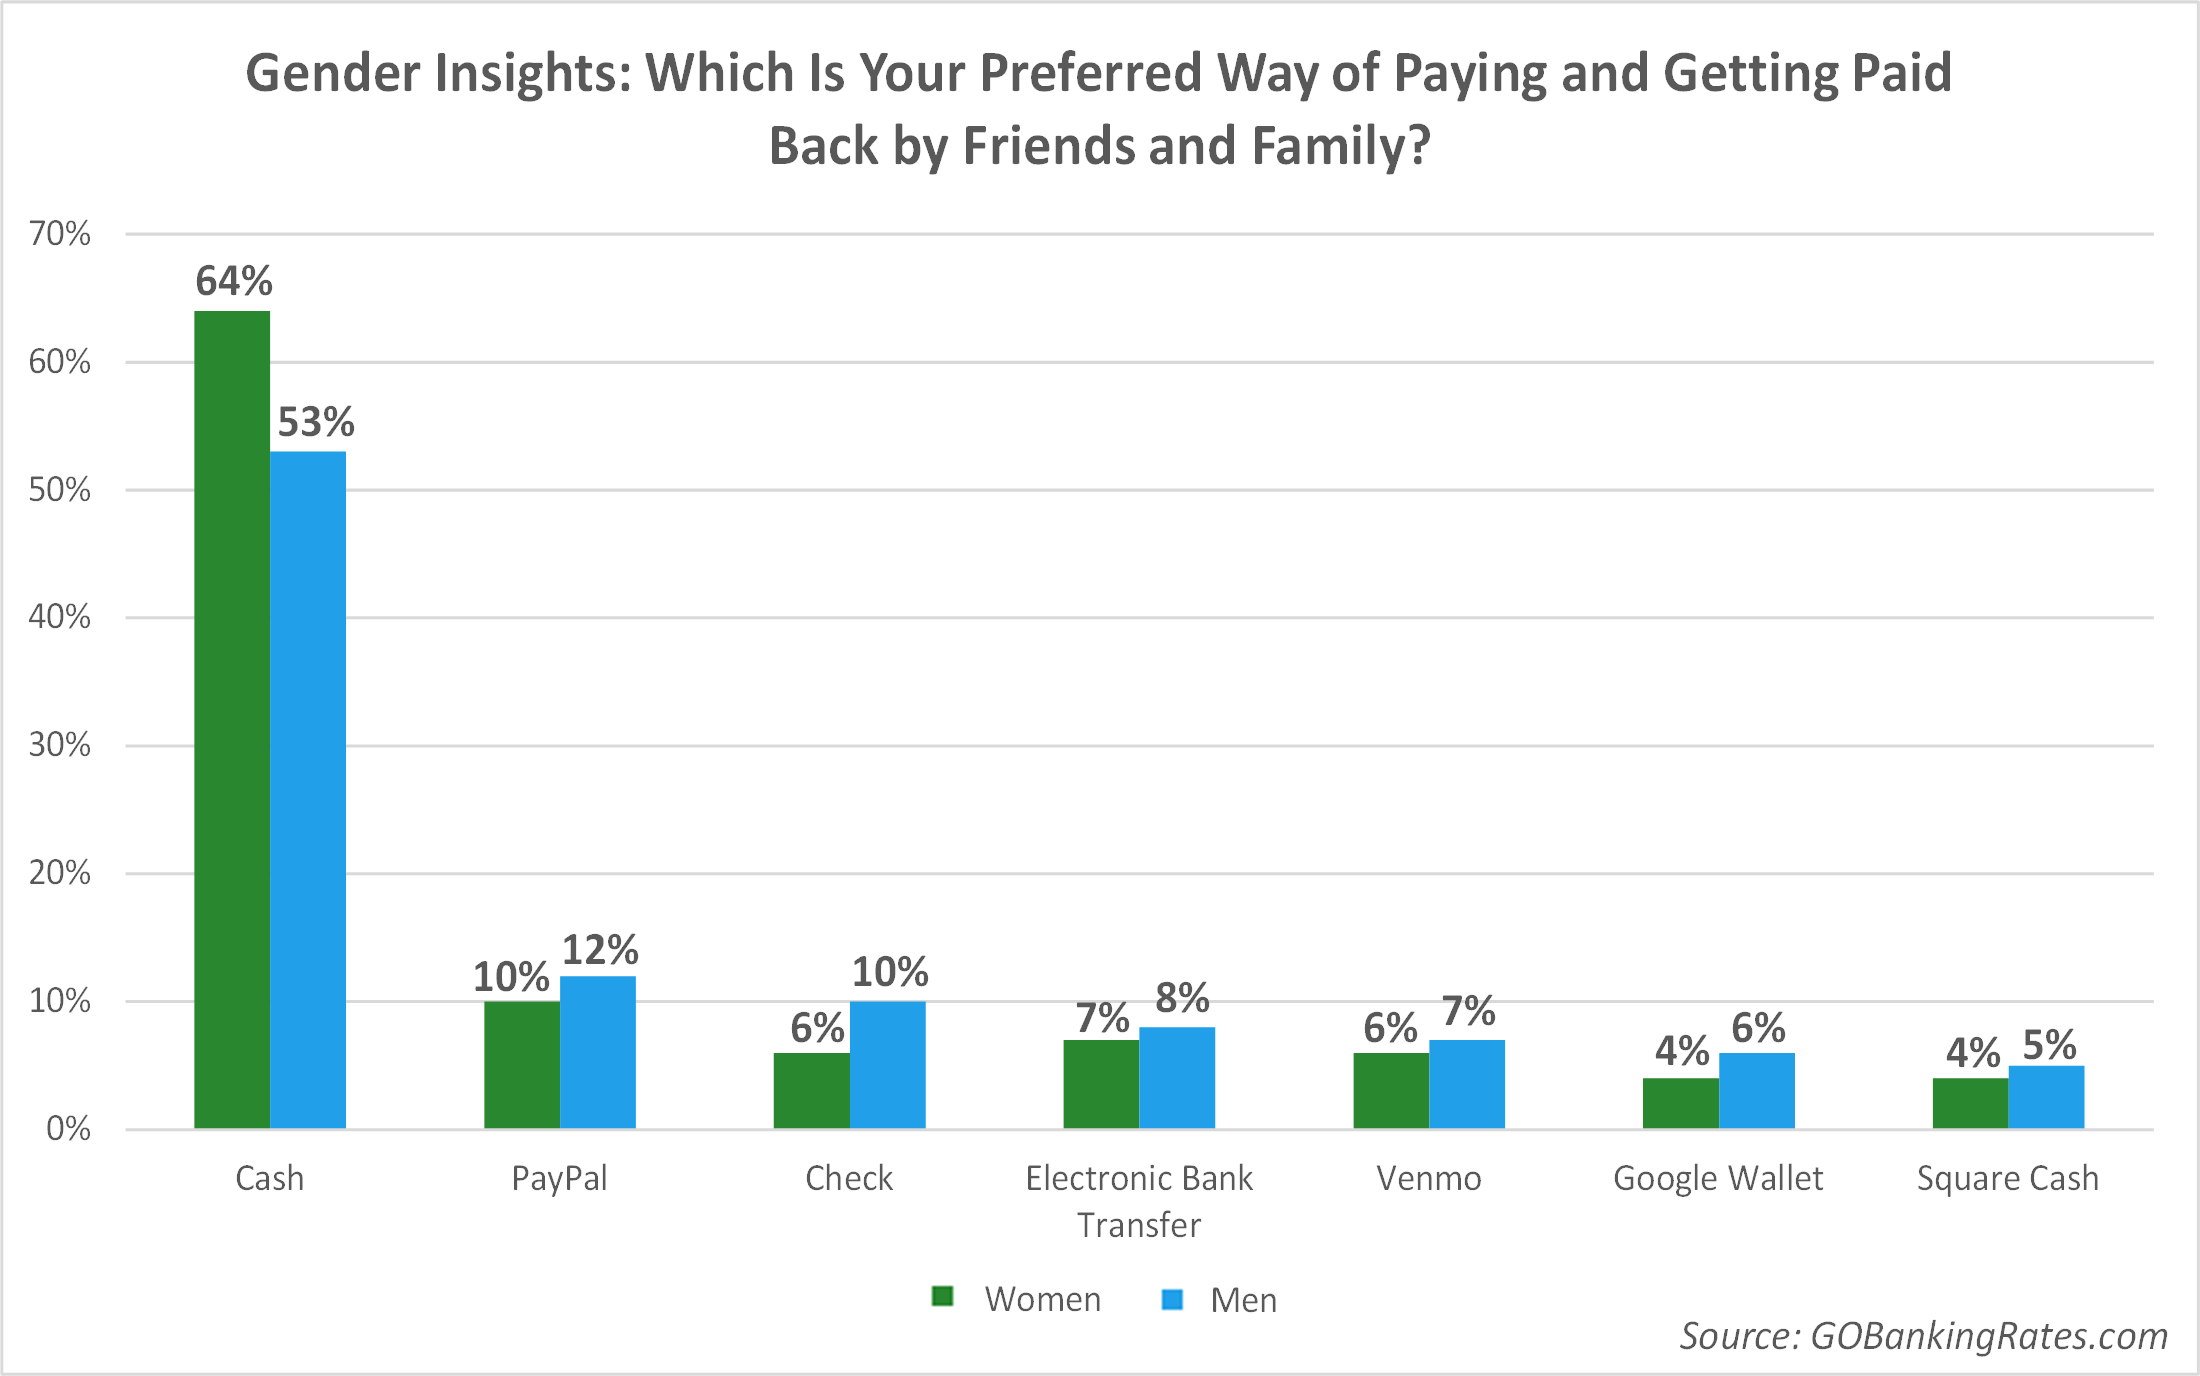 Gender Insights: Women Prefer Cash, Men Prefer Checks and P2P Apps